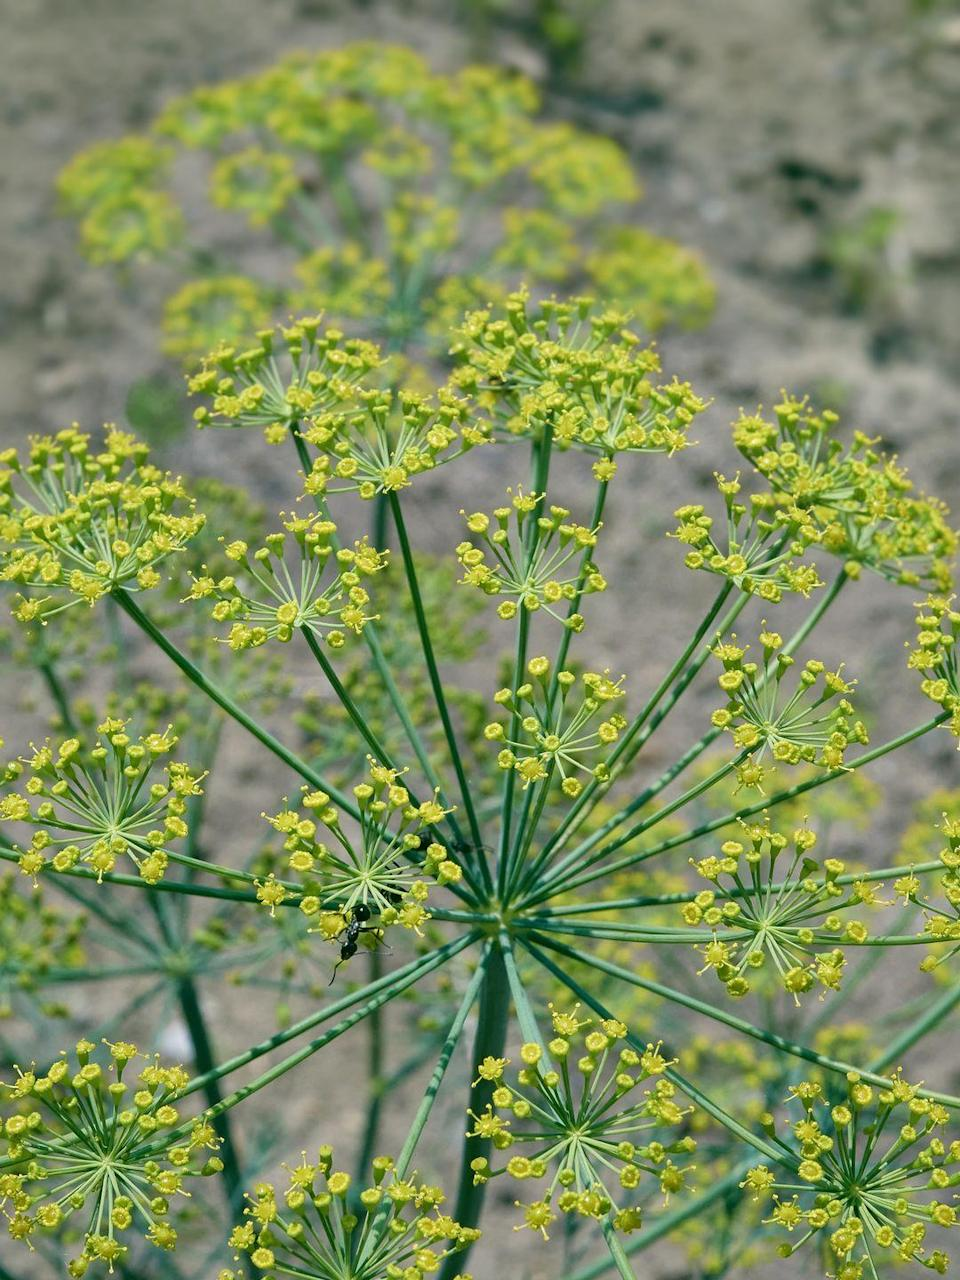 """<p>Although dill is an annual, it drops so many seeds after flowering that it will pop up again the following spring. The flowers have a showy, lacy texture that attract pollinators. It's best used to flavor salads, pickles, and fish dishes. </p><p><a class=""""link rapid-noclick-resp"""" href=""""https://www.johnnyseeds.com/herbs/herbs-for-salad-mix/fernleaf-dill-seed-921.11.html"""" rel=""""nofollow noopener"""" target=""""_blank"""" data-ylk=""""slk:SHOP NOW"""">SHOP NOW</a></p>"""